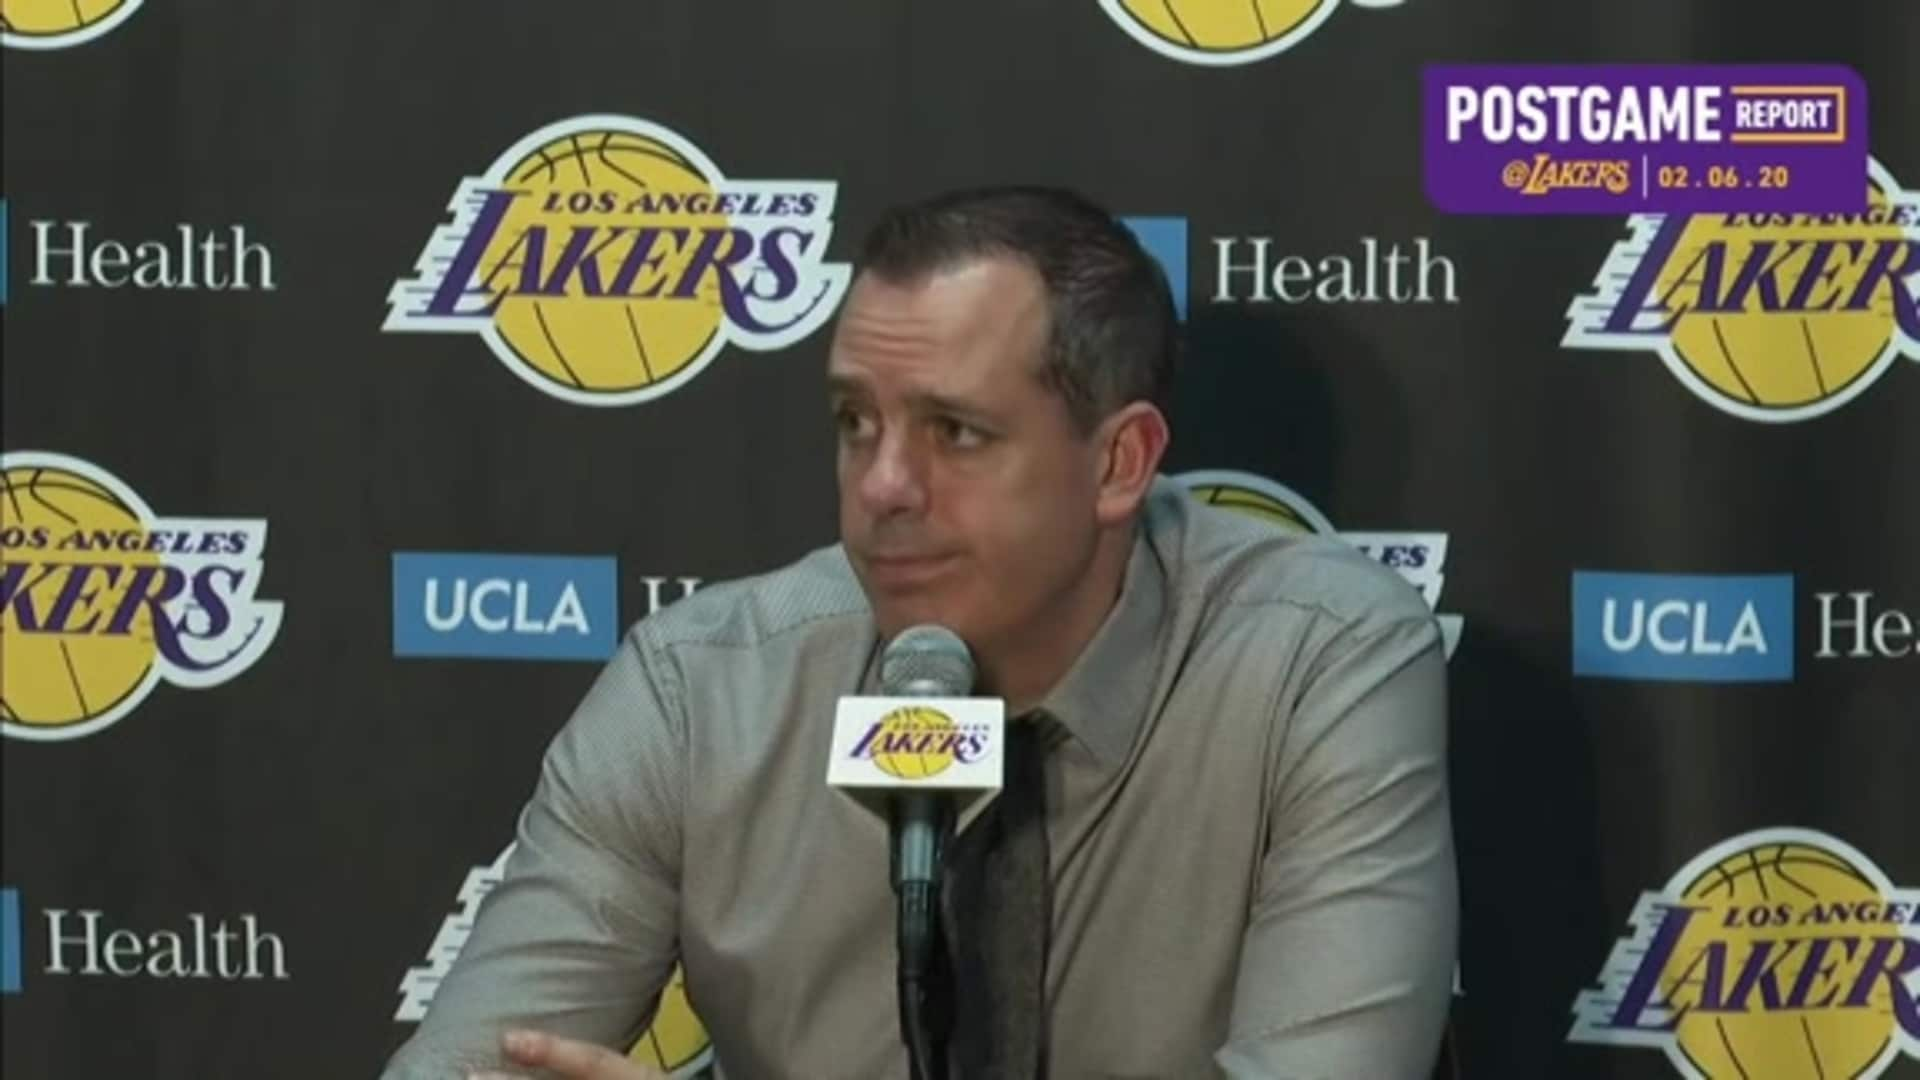 Lakers Postgame: Frank Vogel (2/6/20)